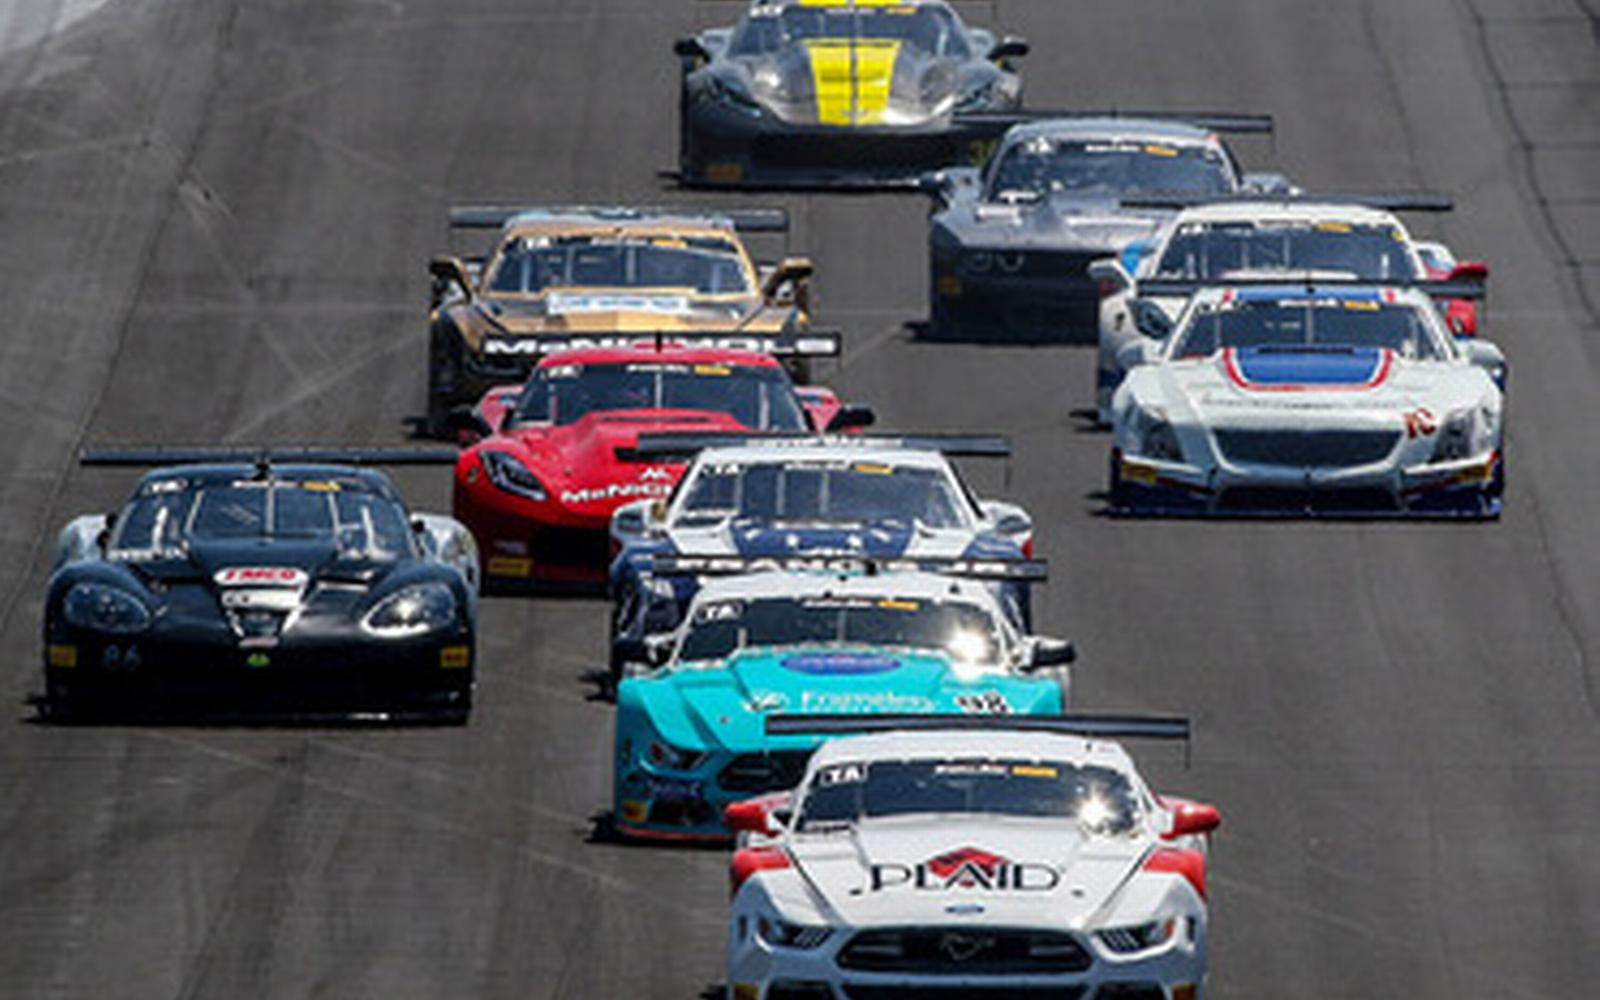 DYSON TAKES SECOND STRAIGHT TRANS AM WIN AT INDY